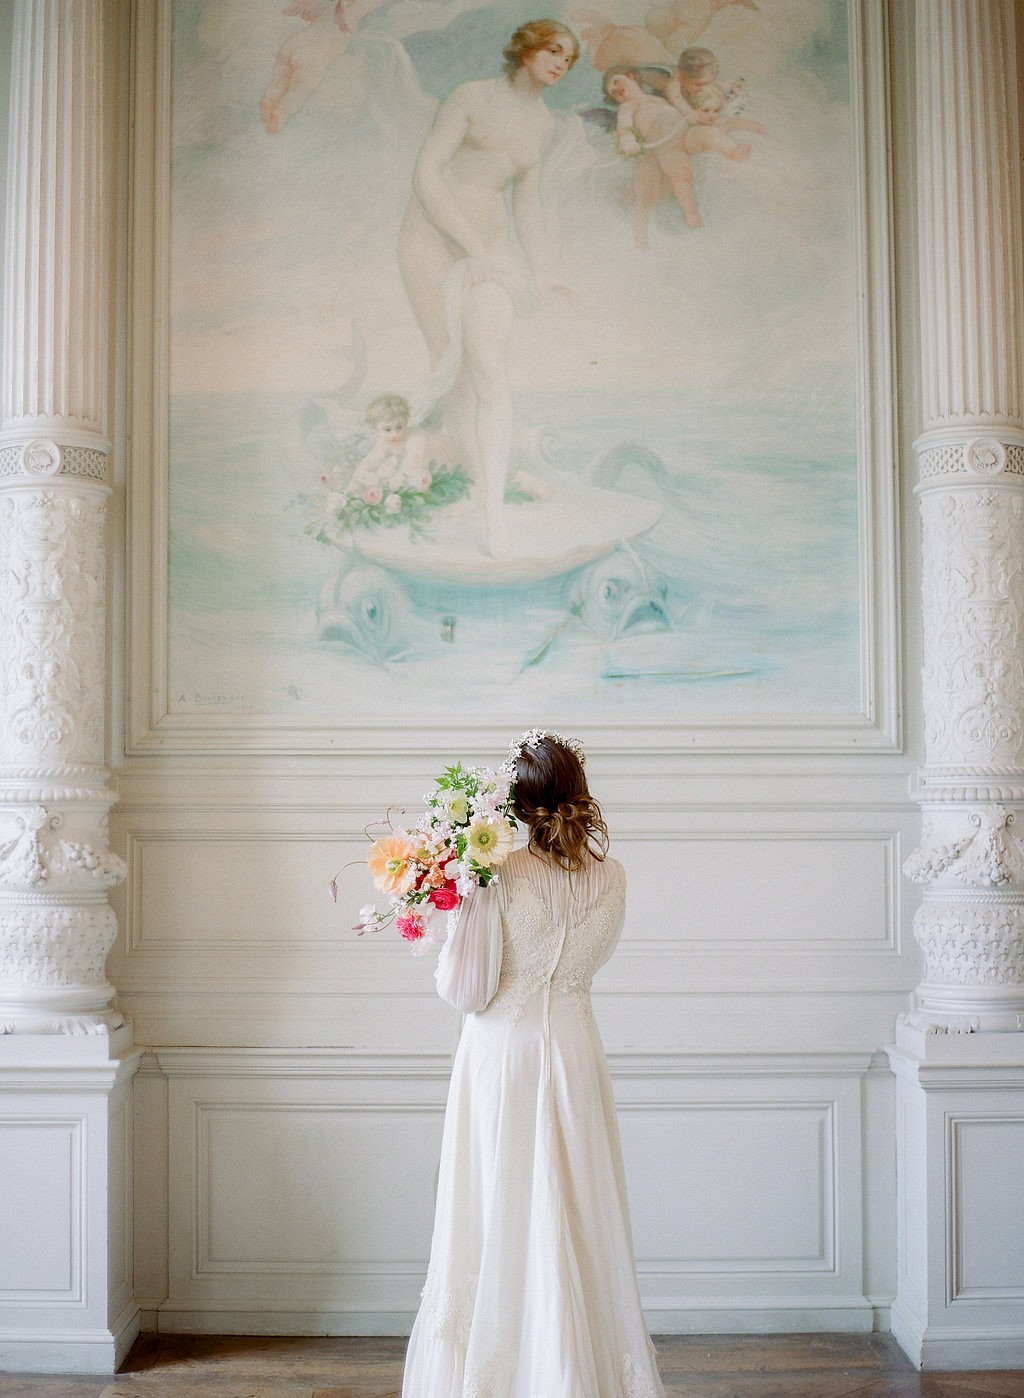 Elegant Wedding at Chateau de Boursault in France